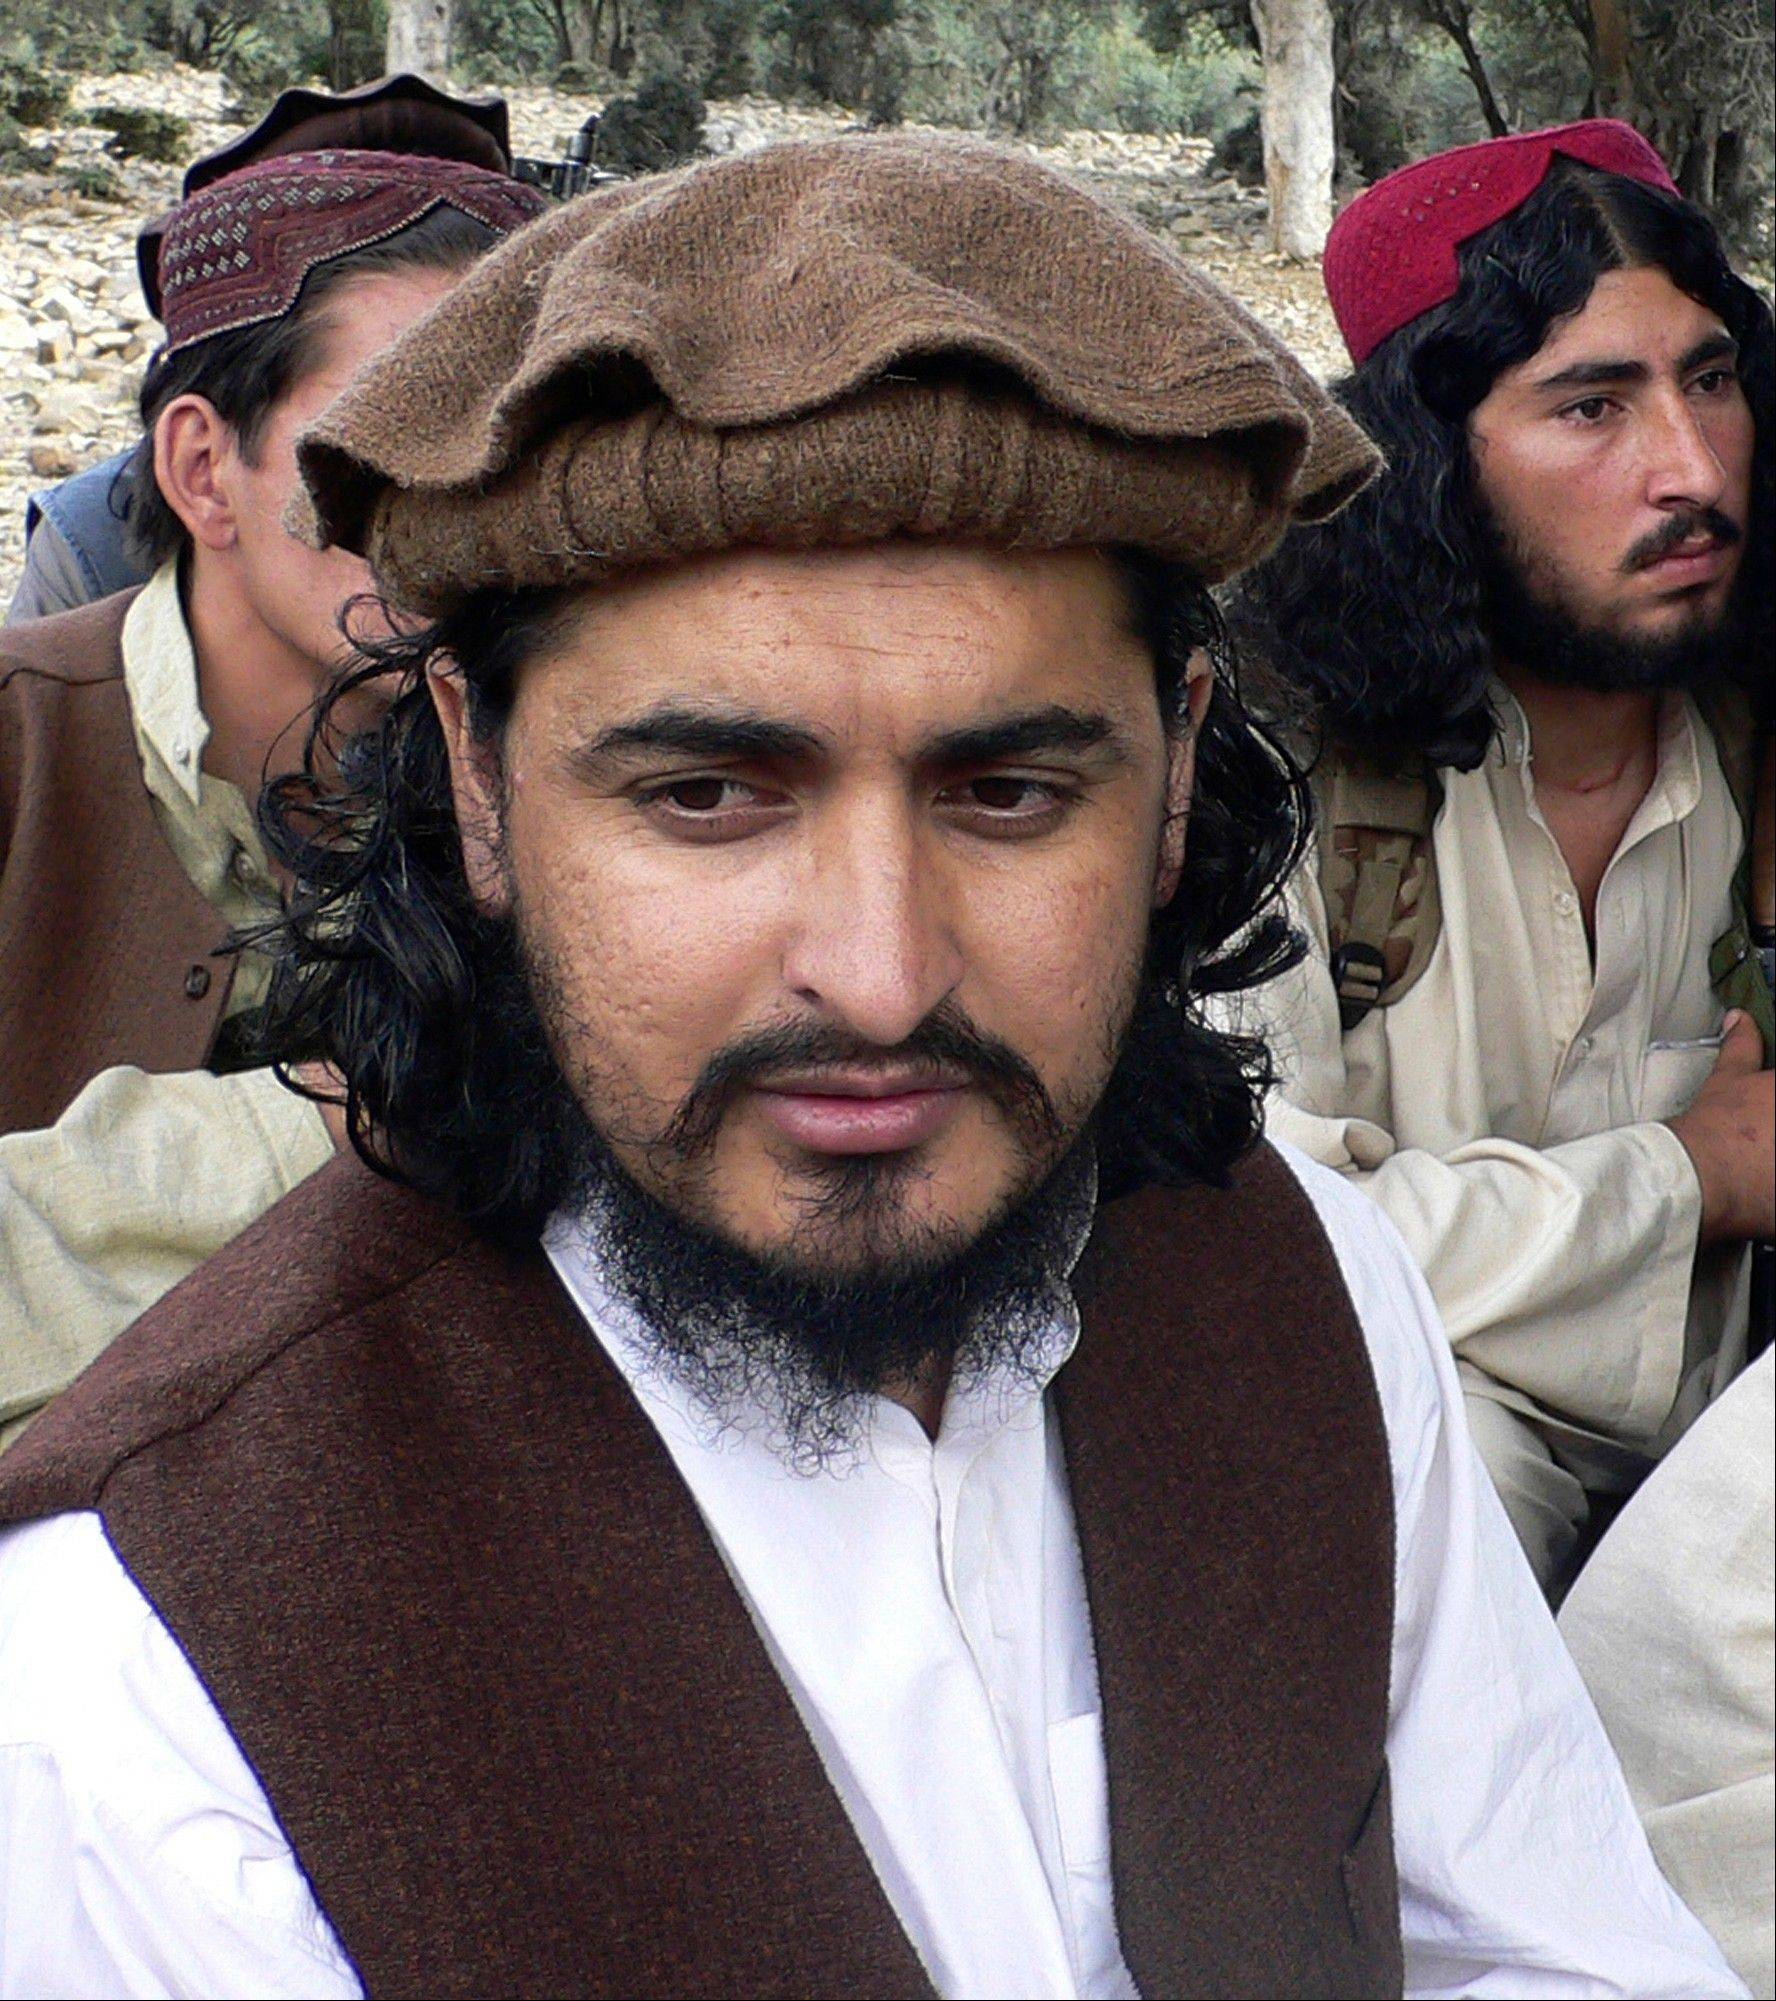 Intelligence officials said Friday that Hakimullah Mehsud, leader of the Pakistani Taliban, was killed in a U.S. drone strike.